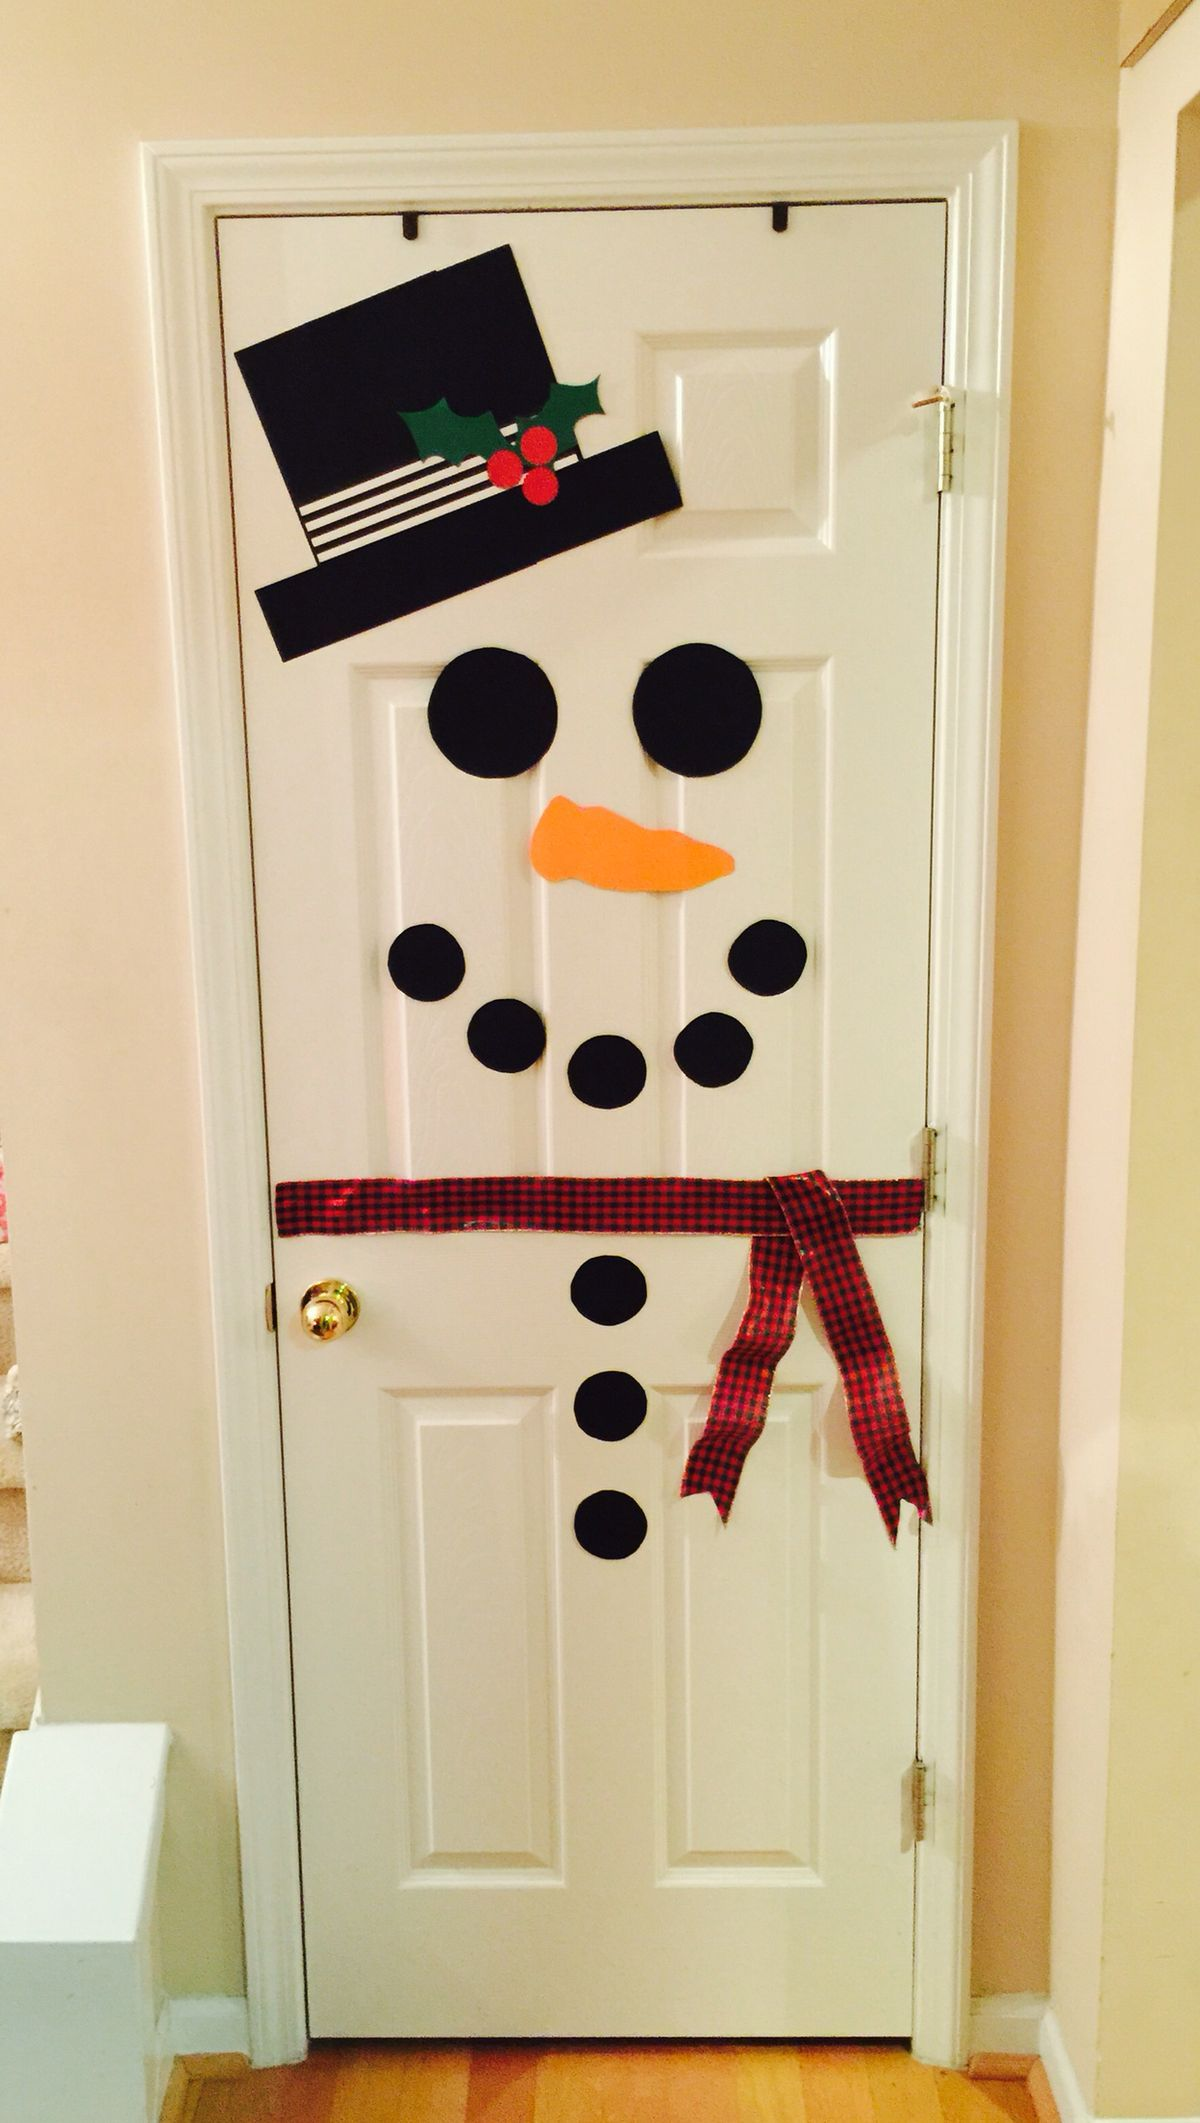 Good pattern for pin the carrot on the snowman.... games